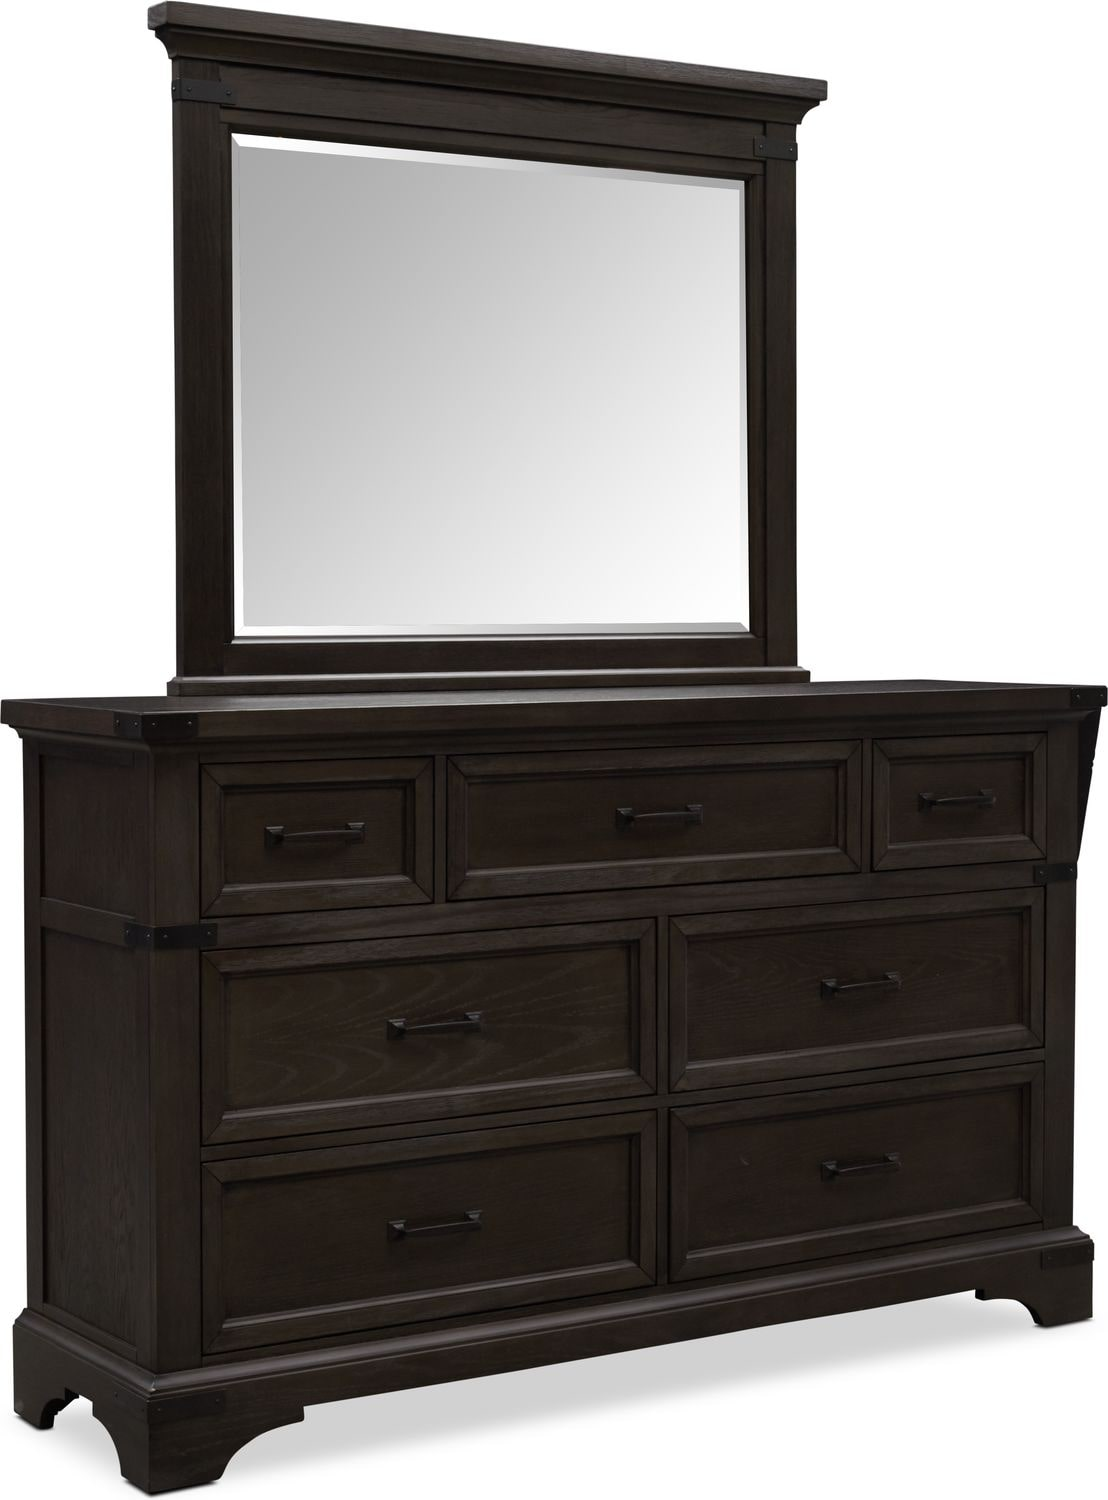 Bedroom Furniture - Victor Dresser and Mirror